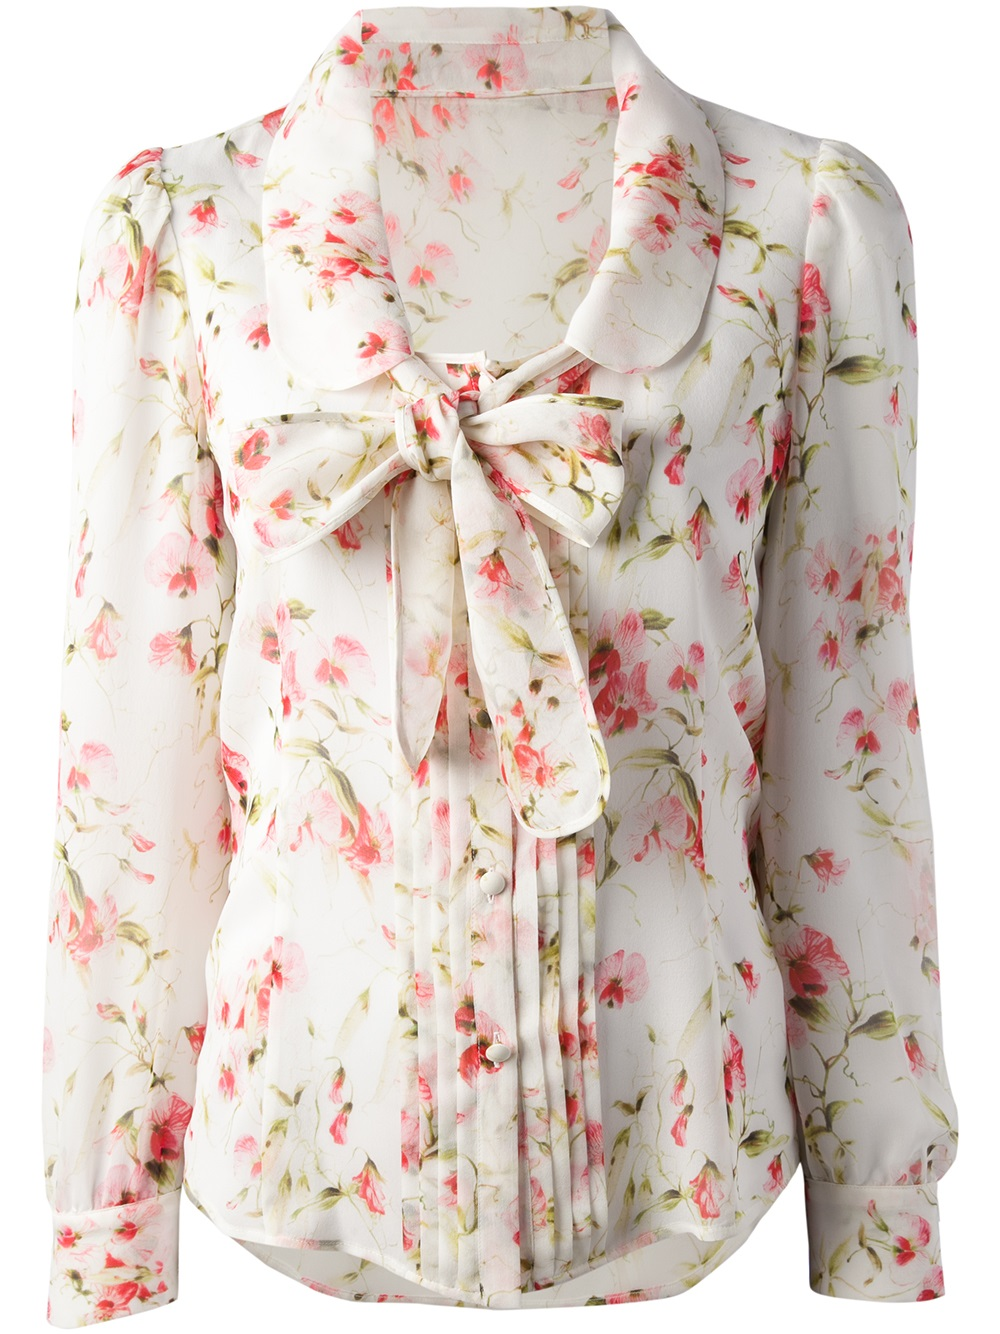 Lyst red valentino floral print blouse gallery mightylinksfo